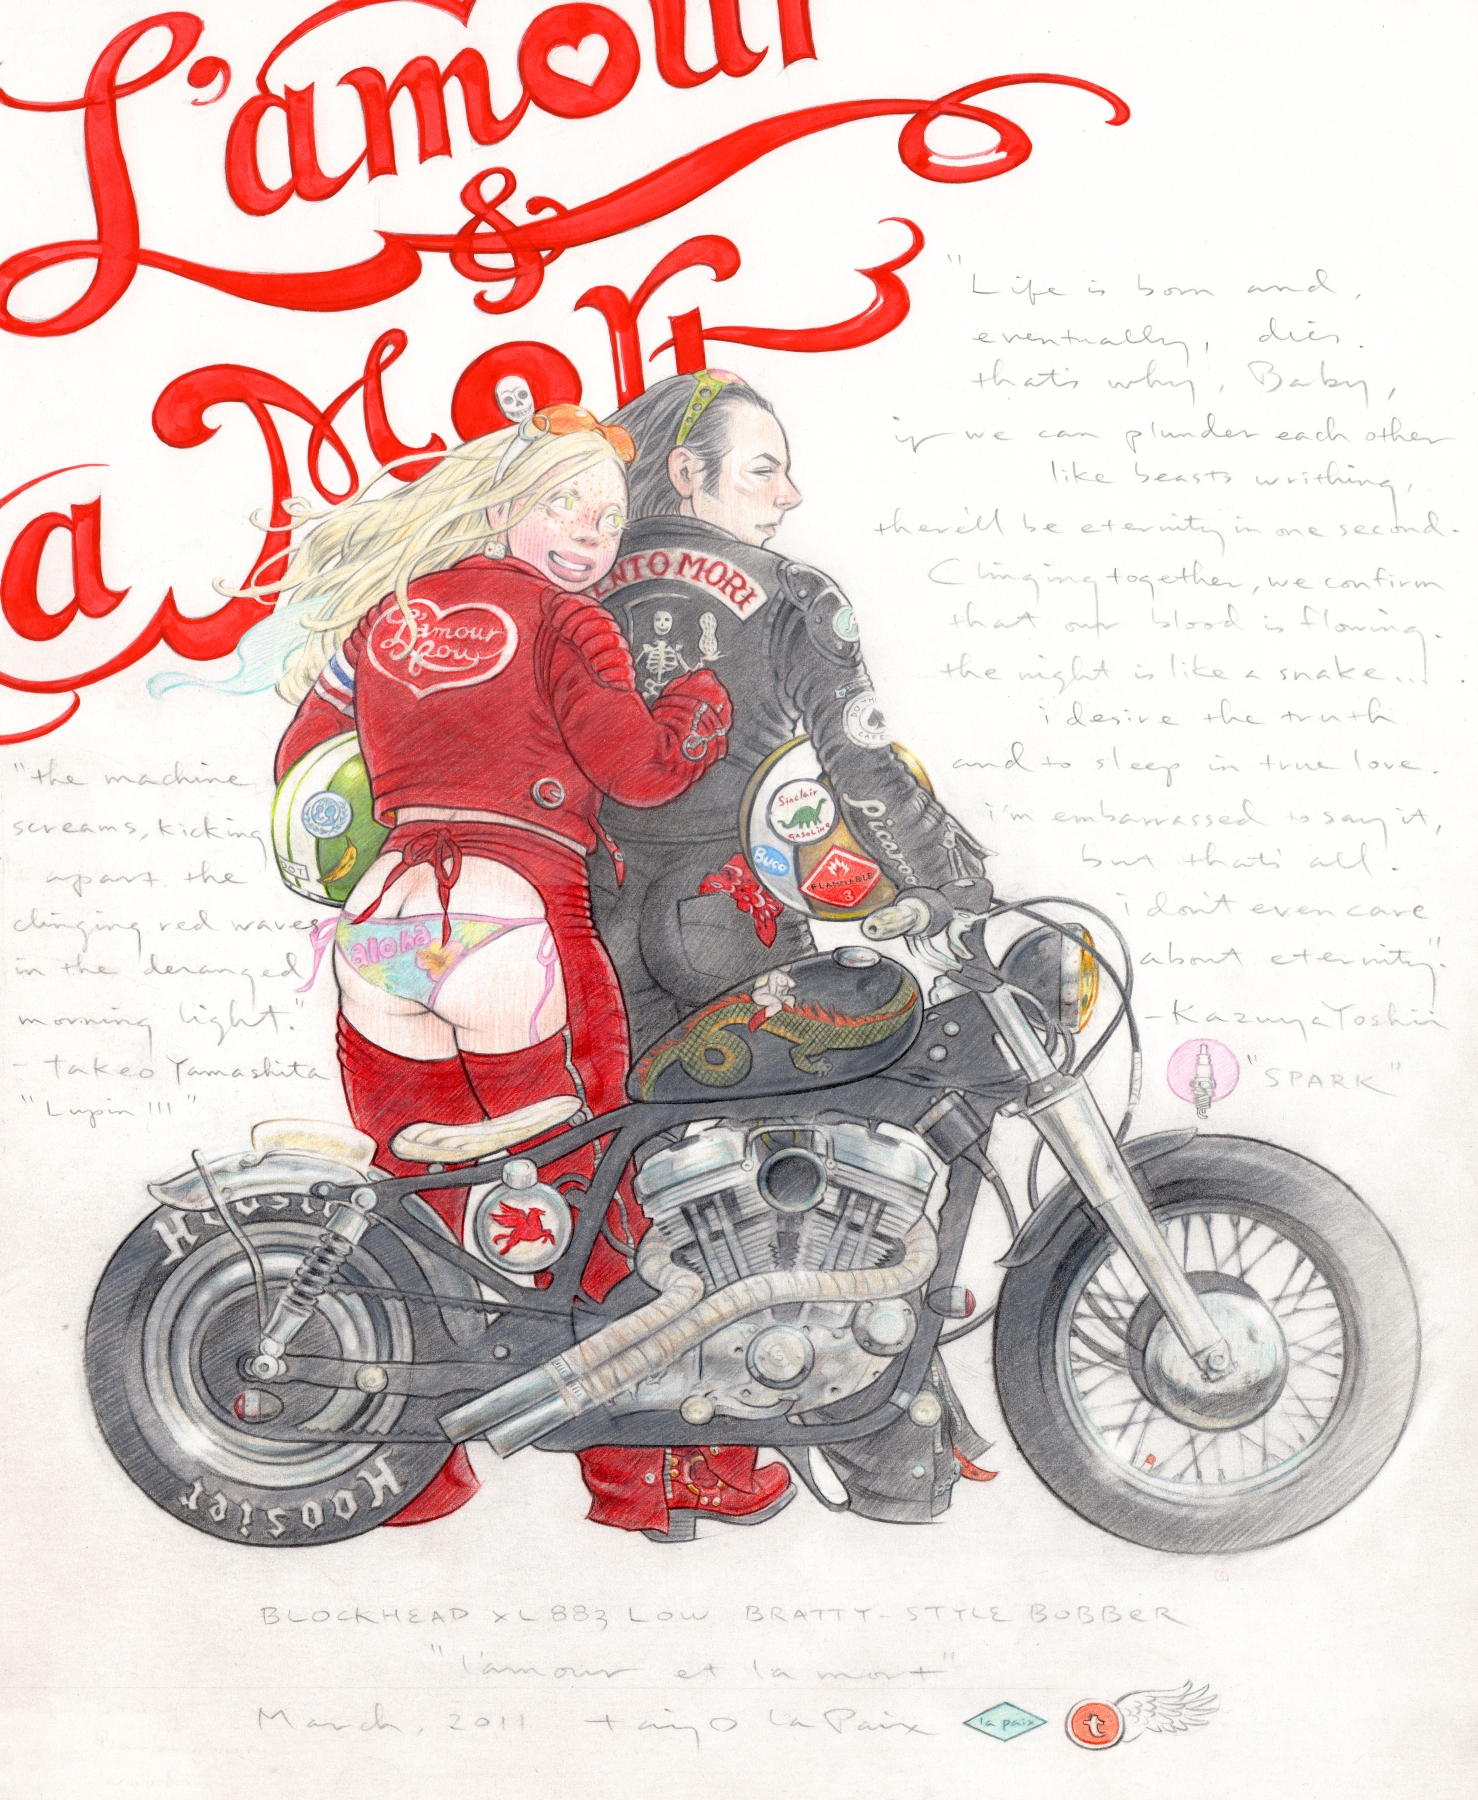 L'amour et la Mort, 2011, pencil and ink on paper, 13 x 11 inches